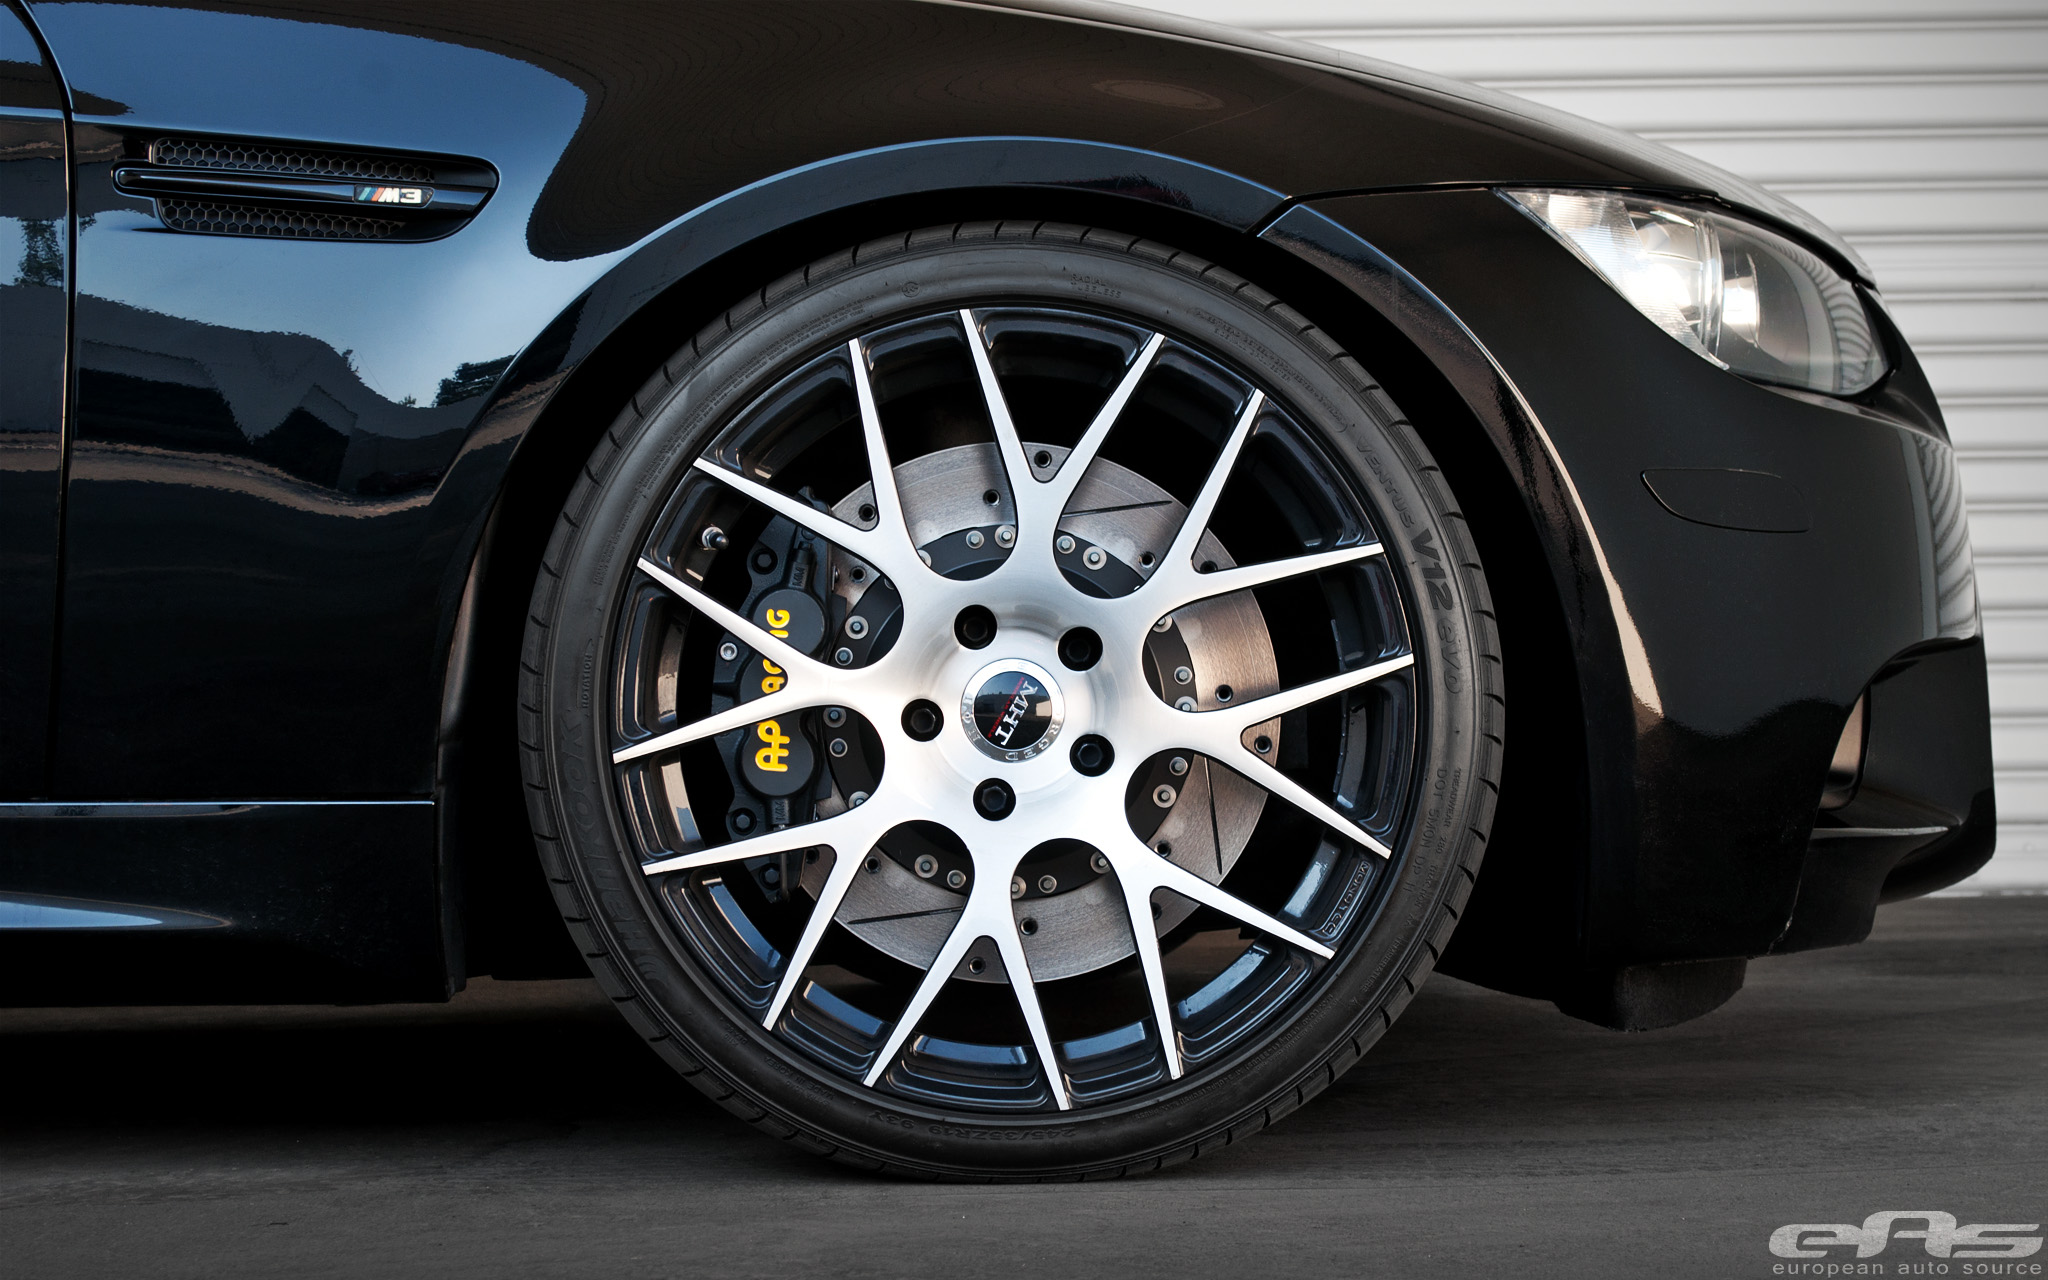 Howie S Vf620 M3 Gets Ap Racing Brakes Bmw Performance